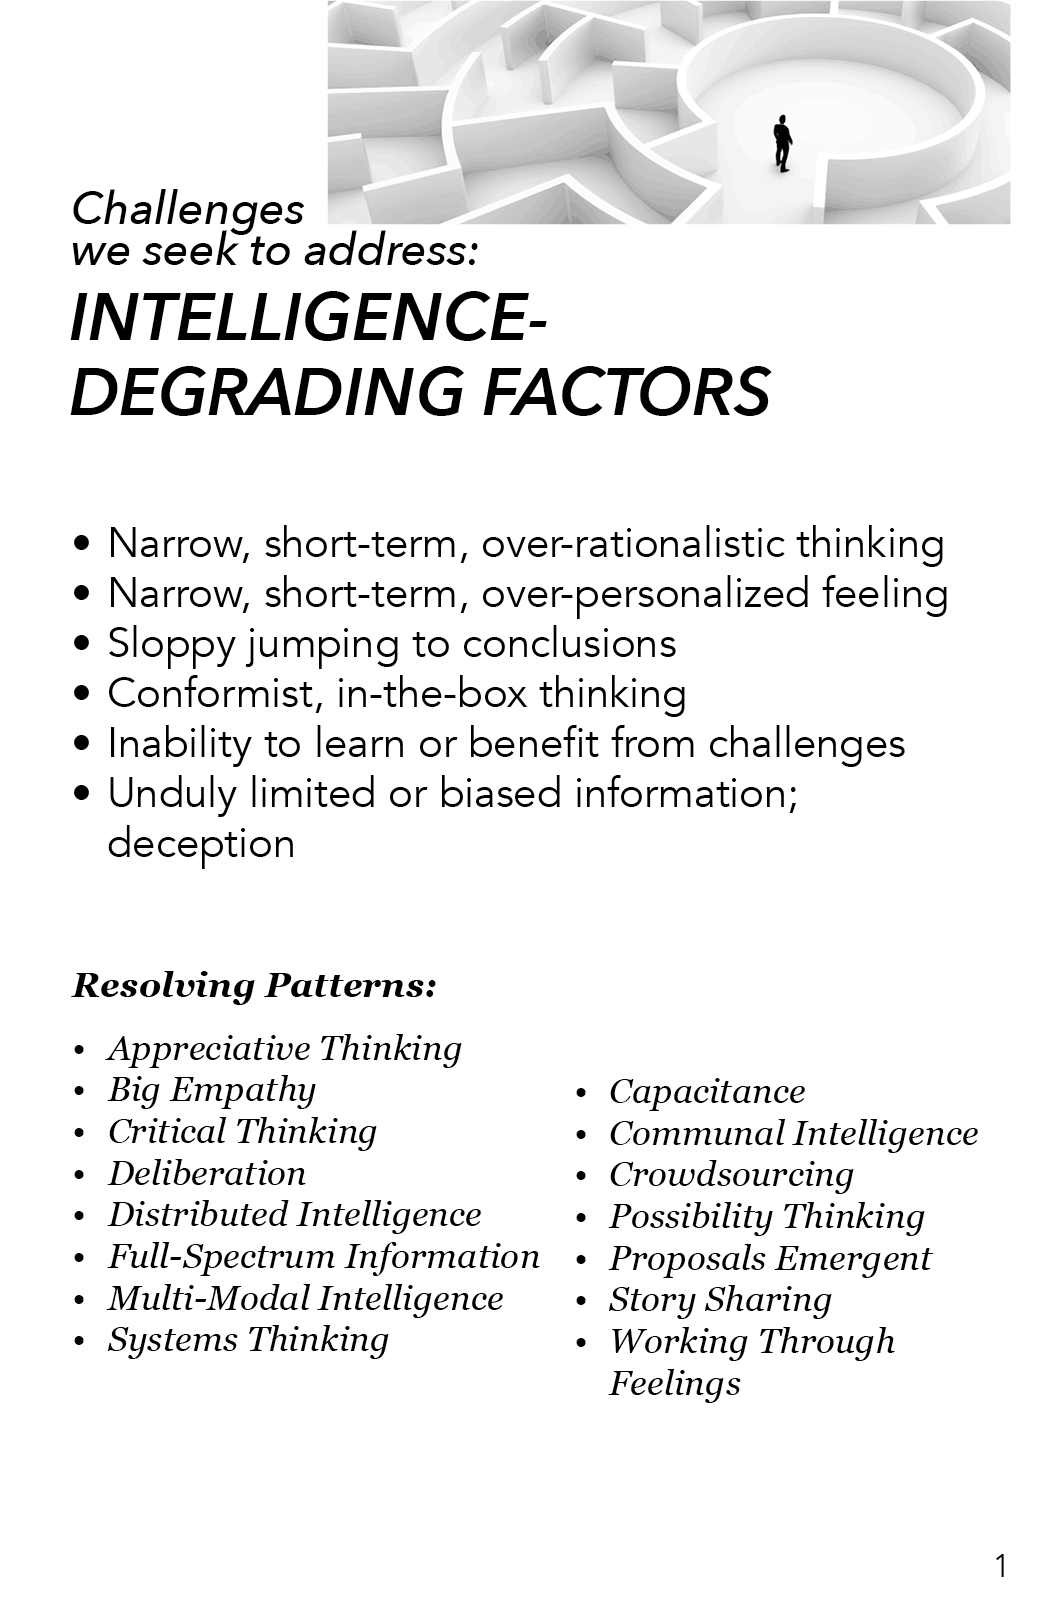 AAA - Intelligence Degrading Factors